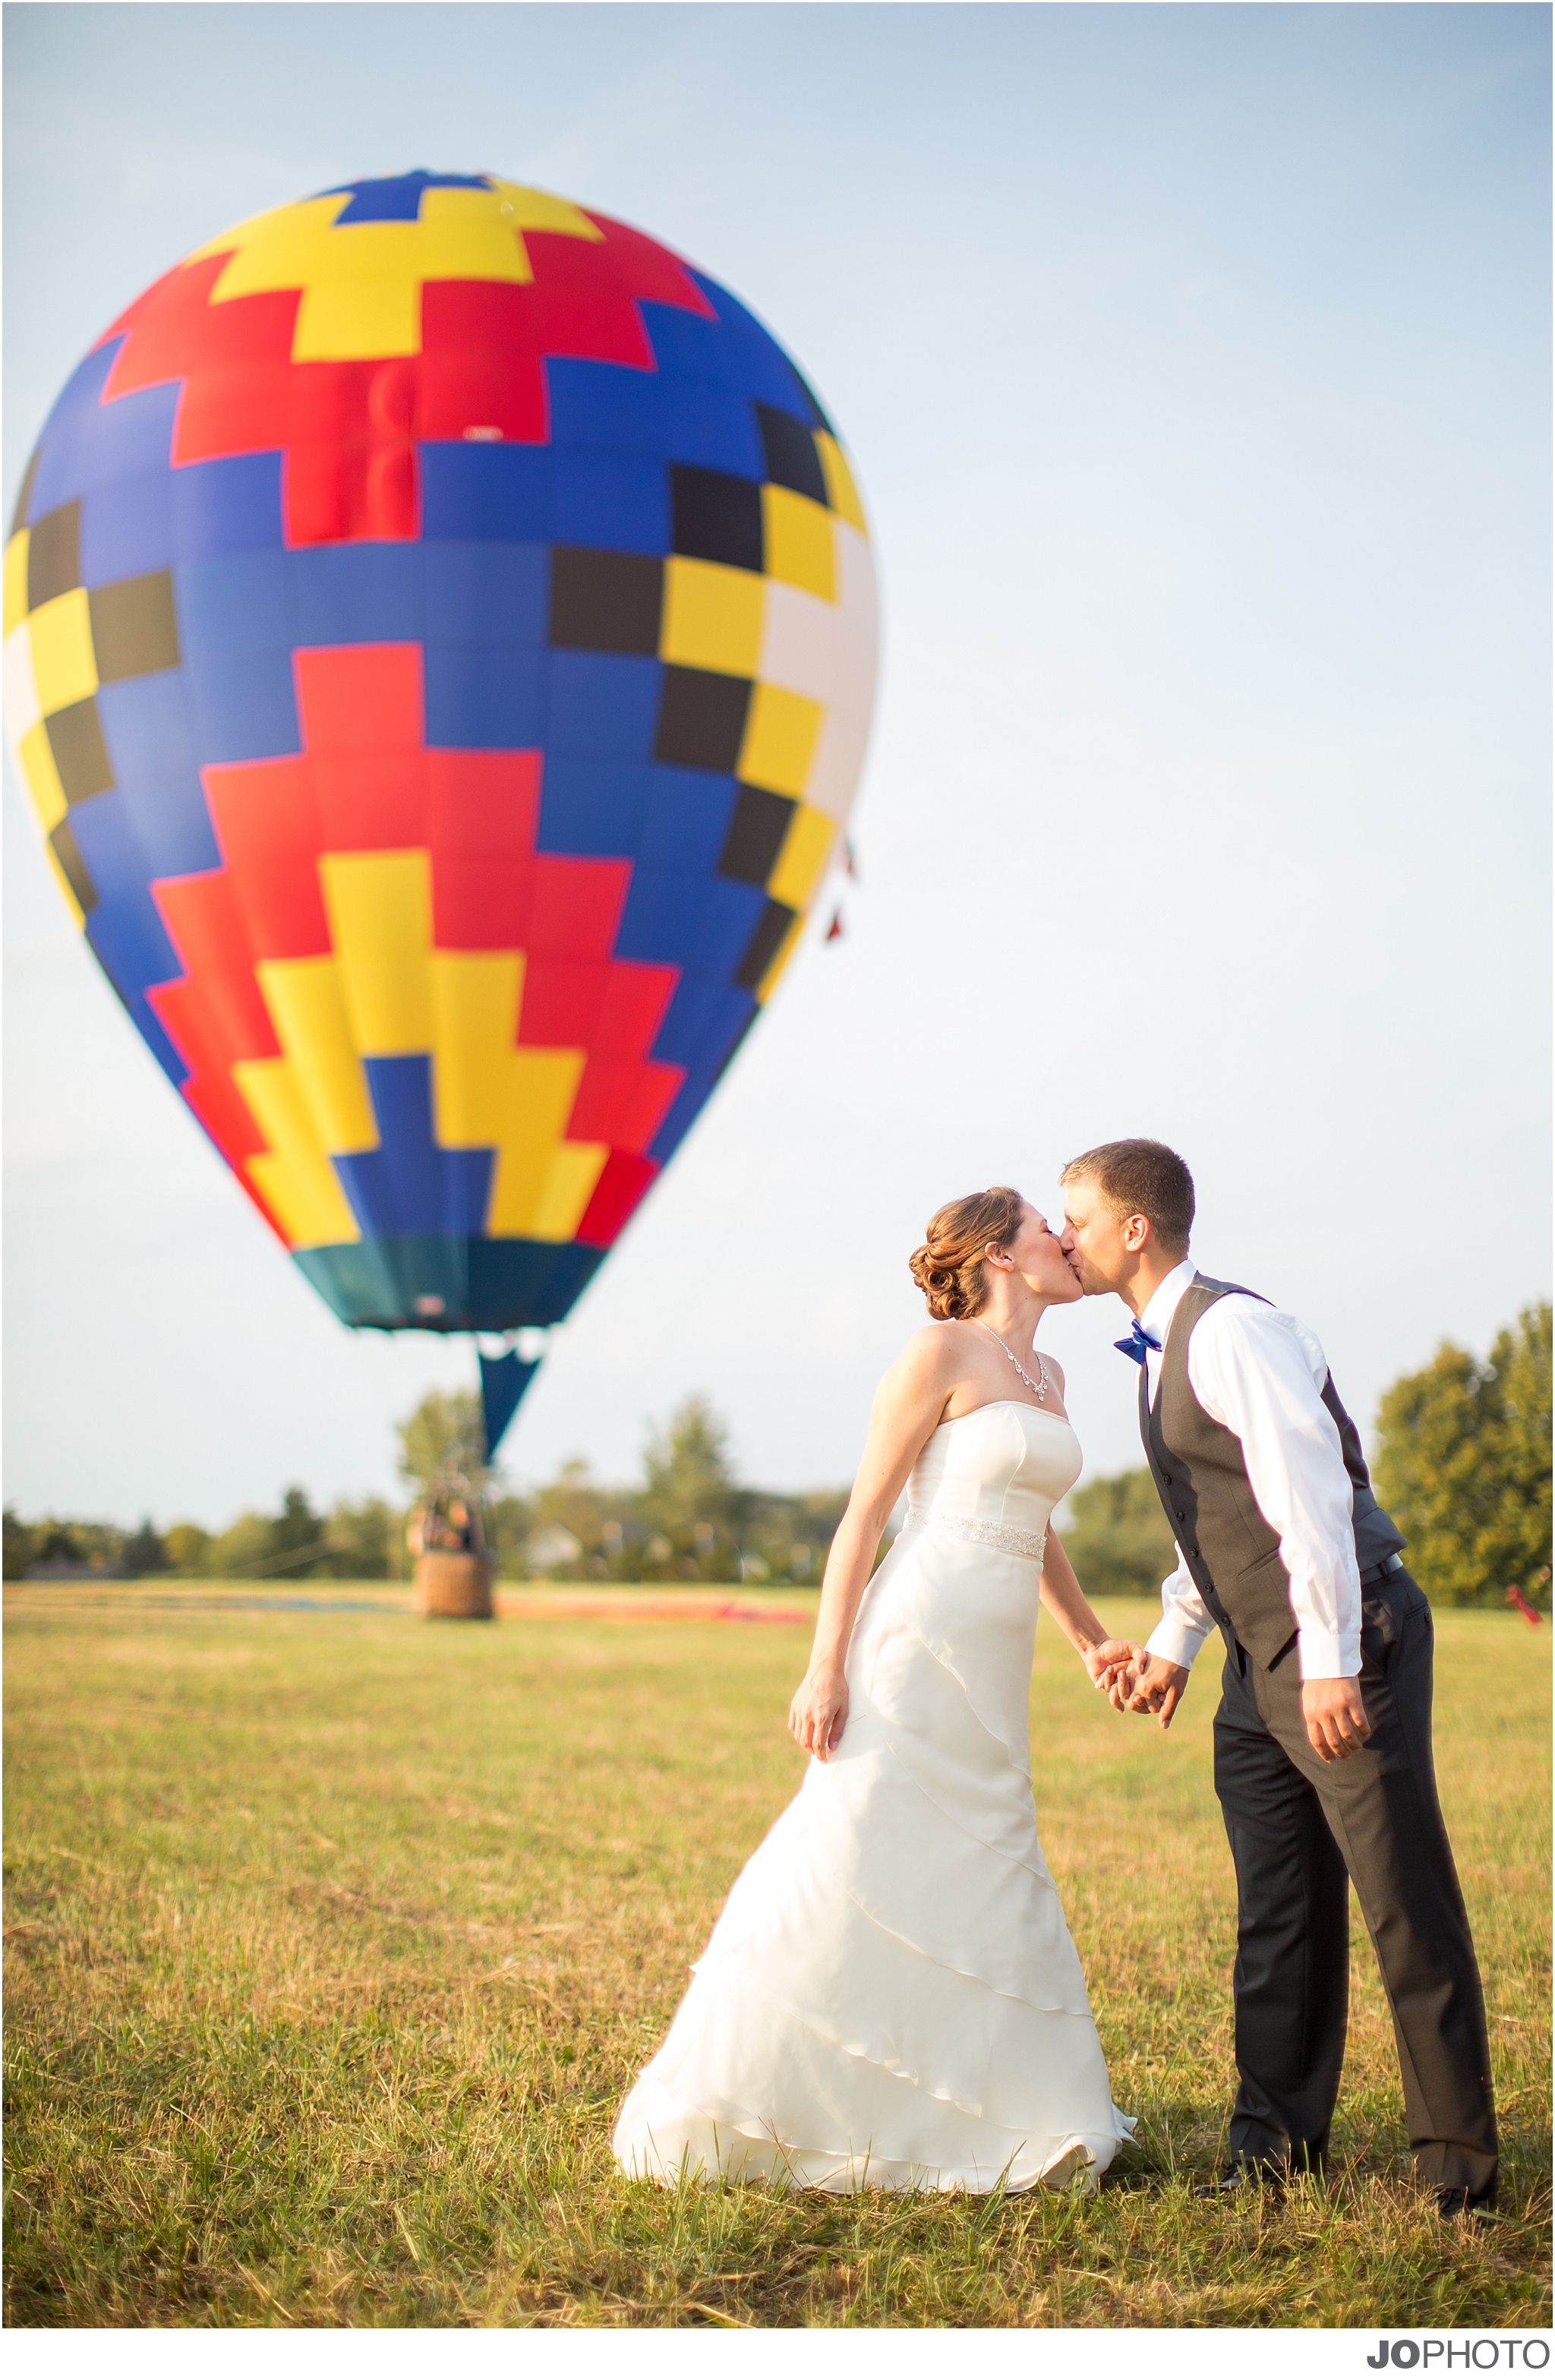 Hot Air Balloon Knoxville Wedding Photographers Jophoto